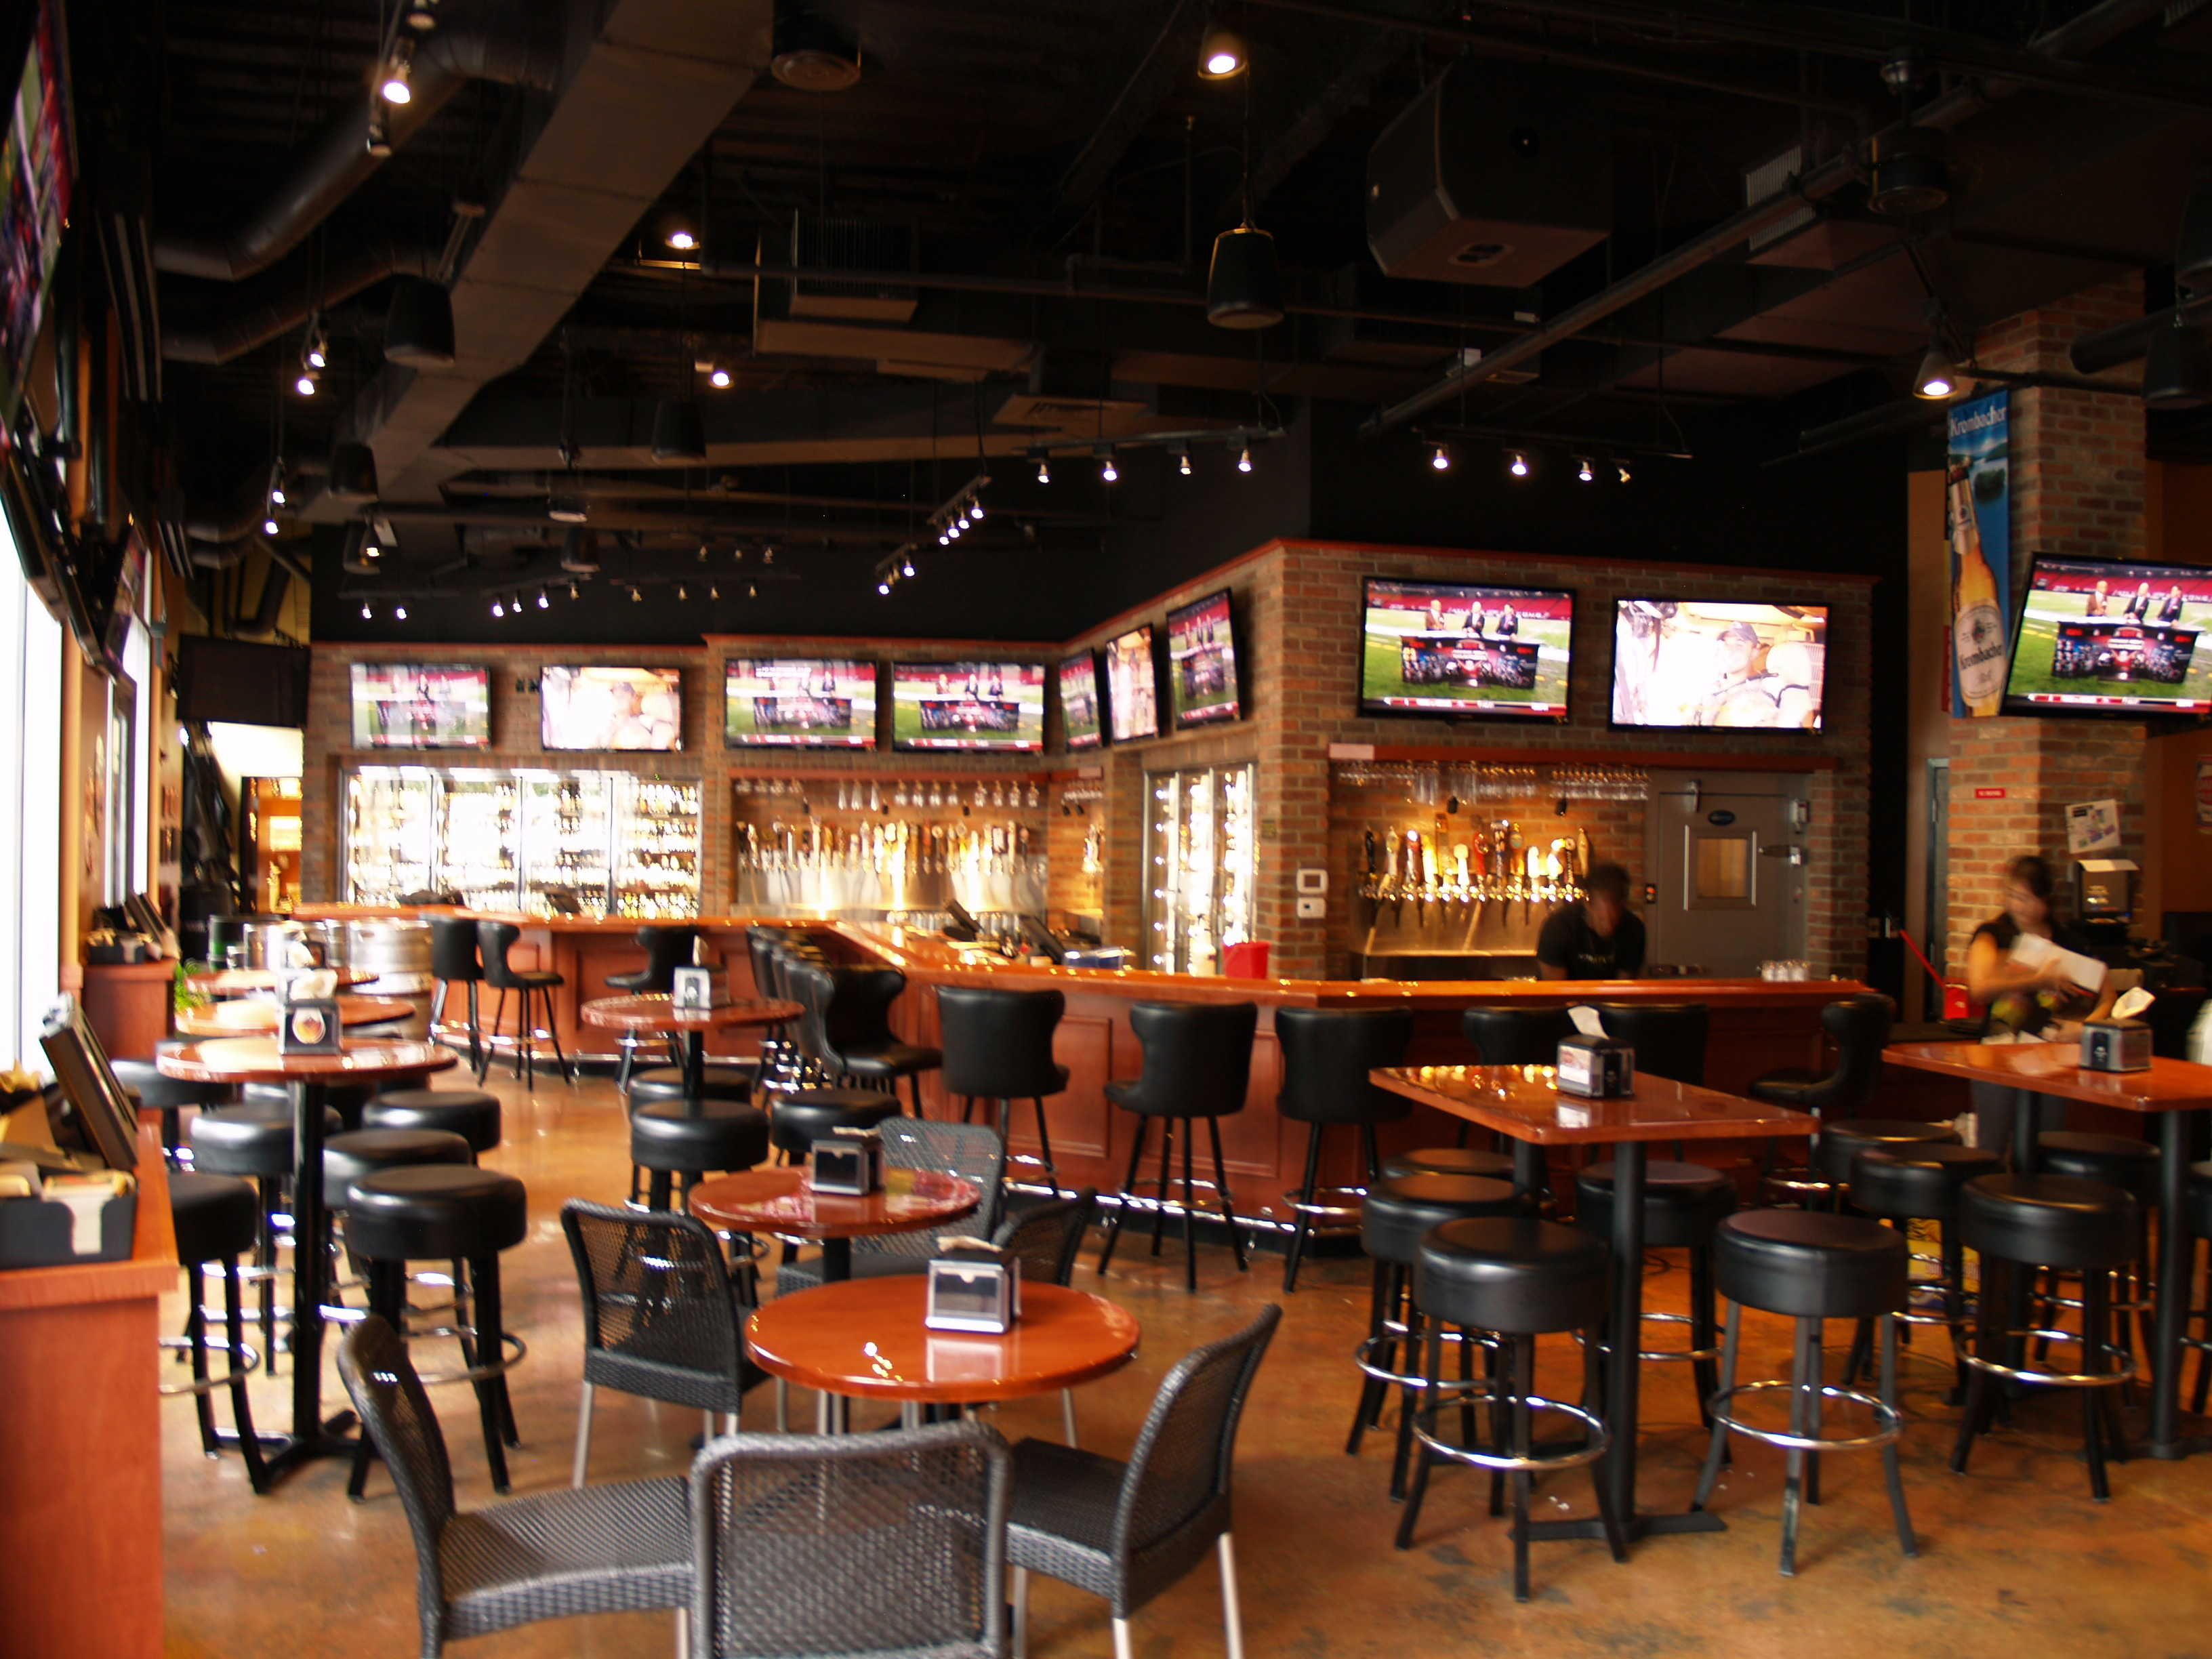 Furniture Store Canton Mi World Of Beer Grand Opening In Canton Michigan Mon Oct